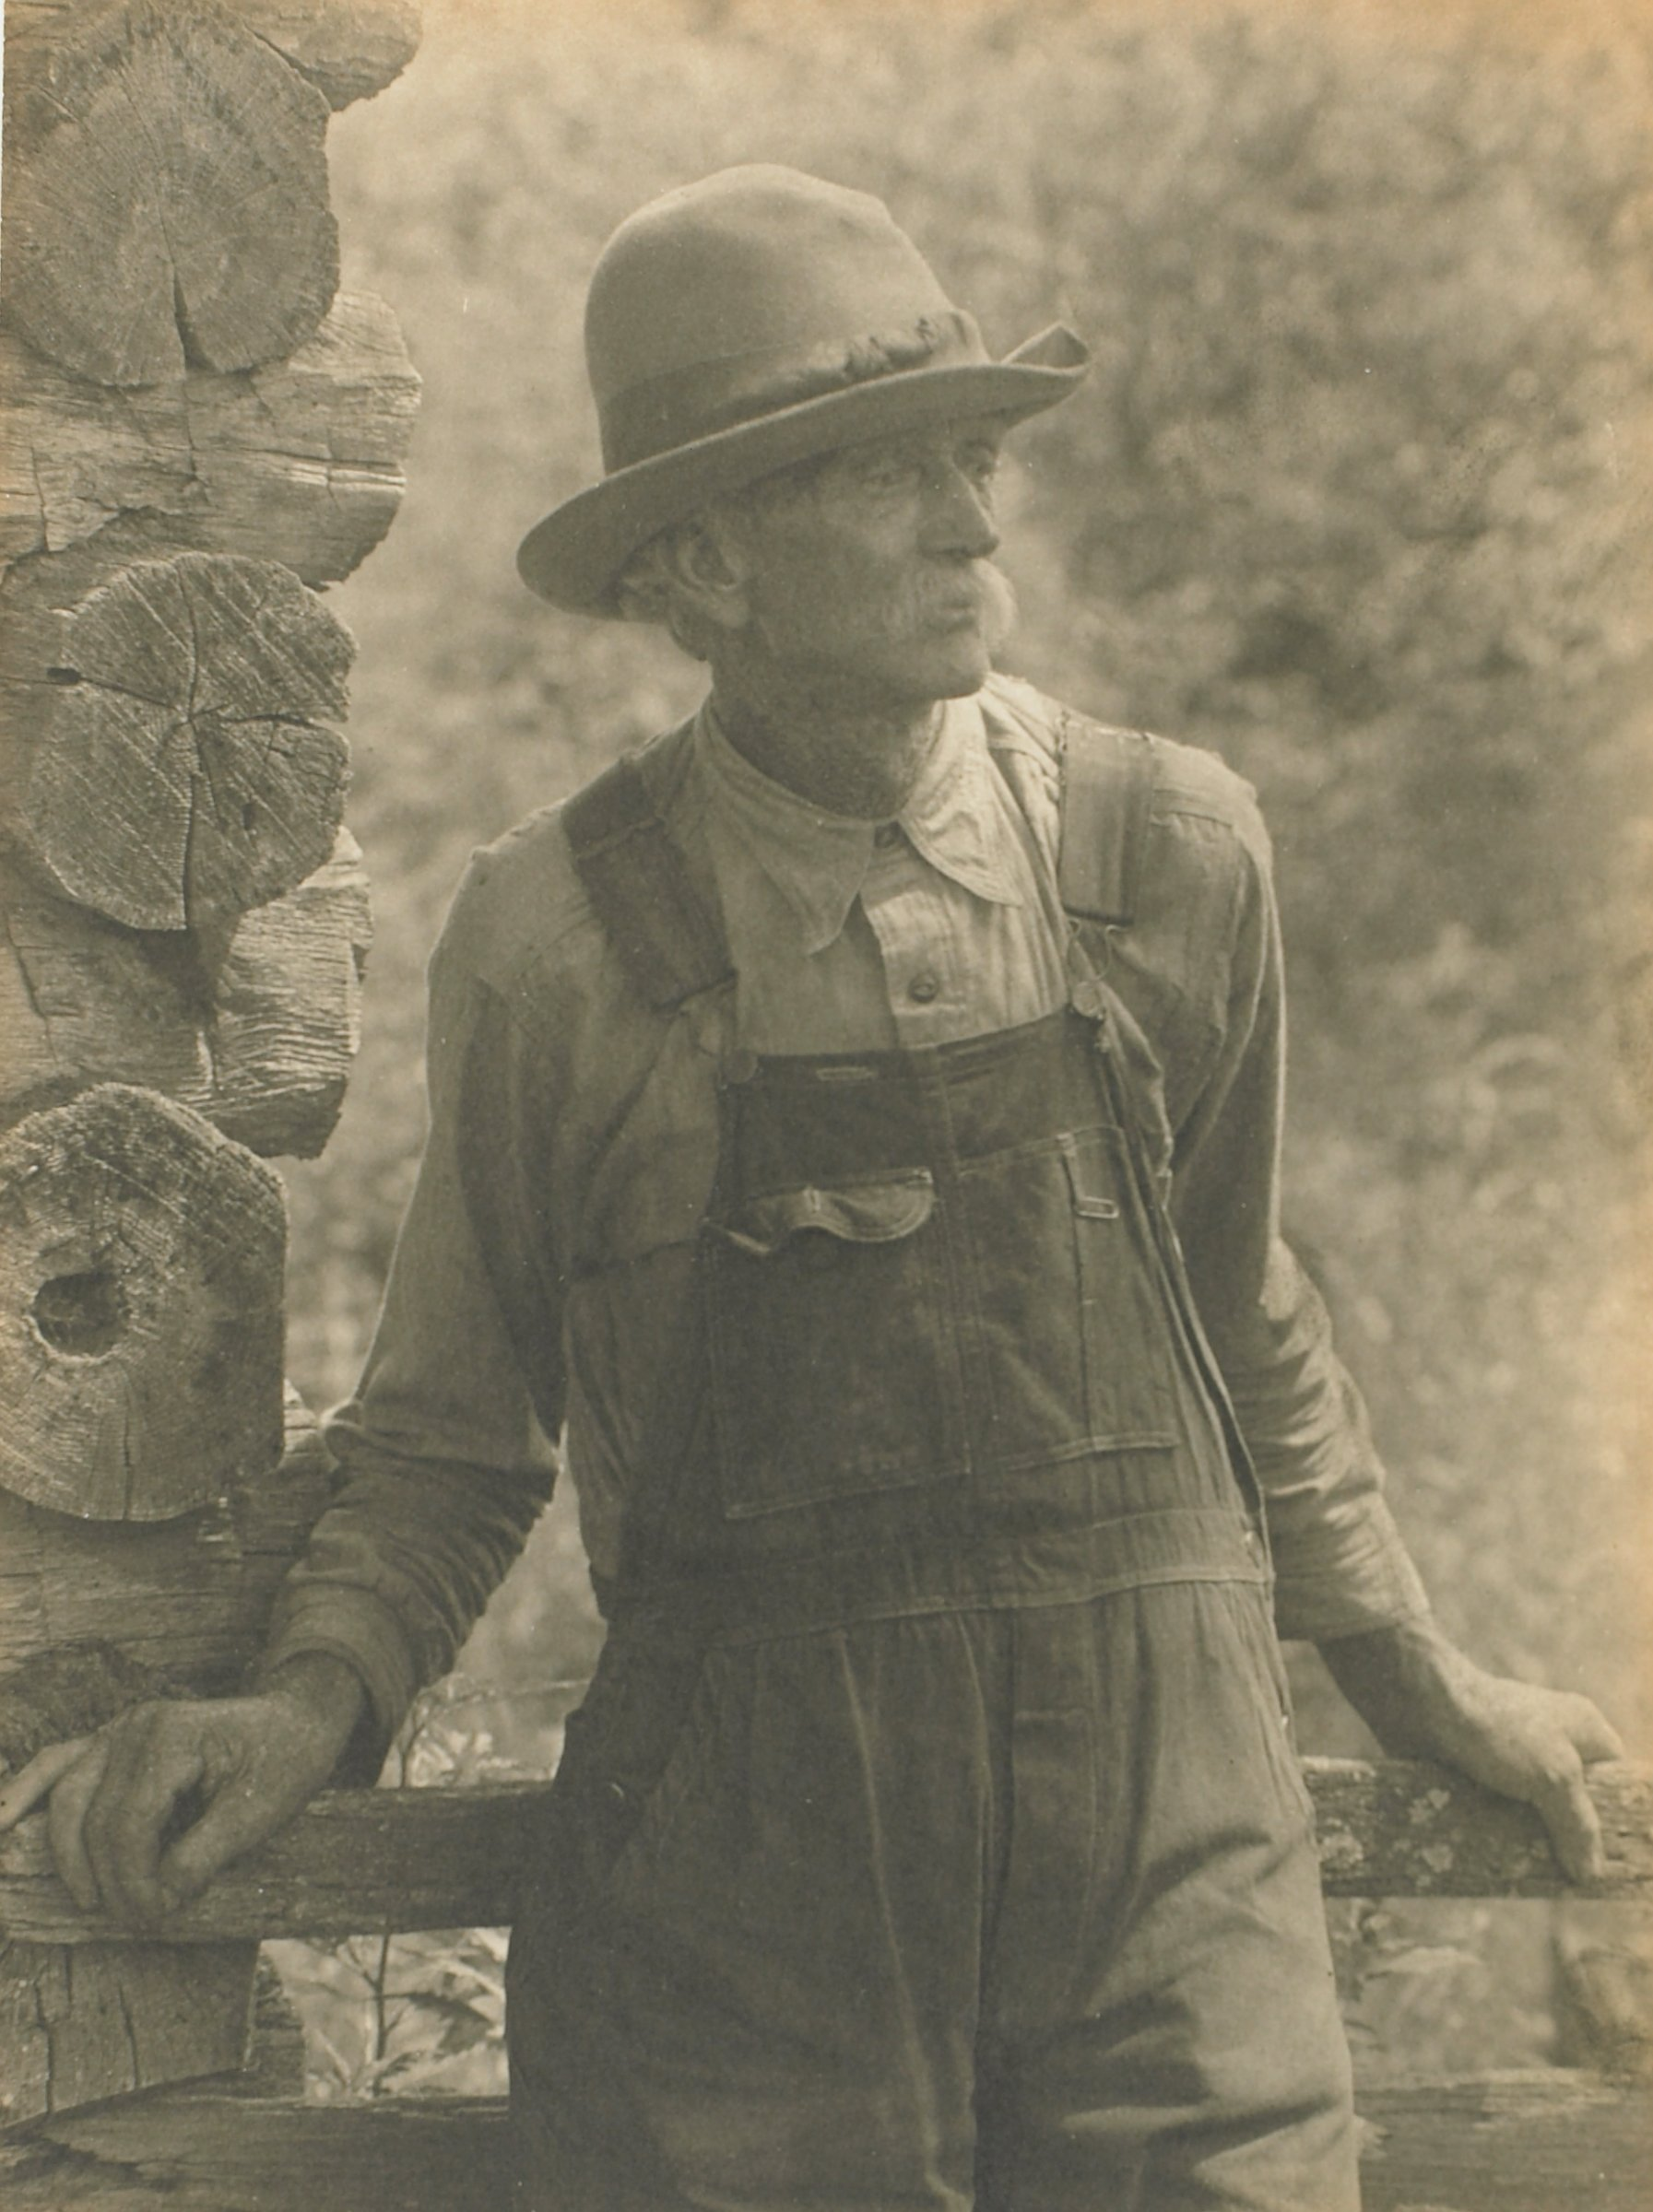 A black and white portrait of an unknown man dressed in a button-down shirt and overalls. The man leans against a wooden rail attached to the edge of a log-cabin.